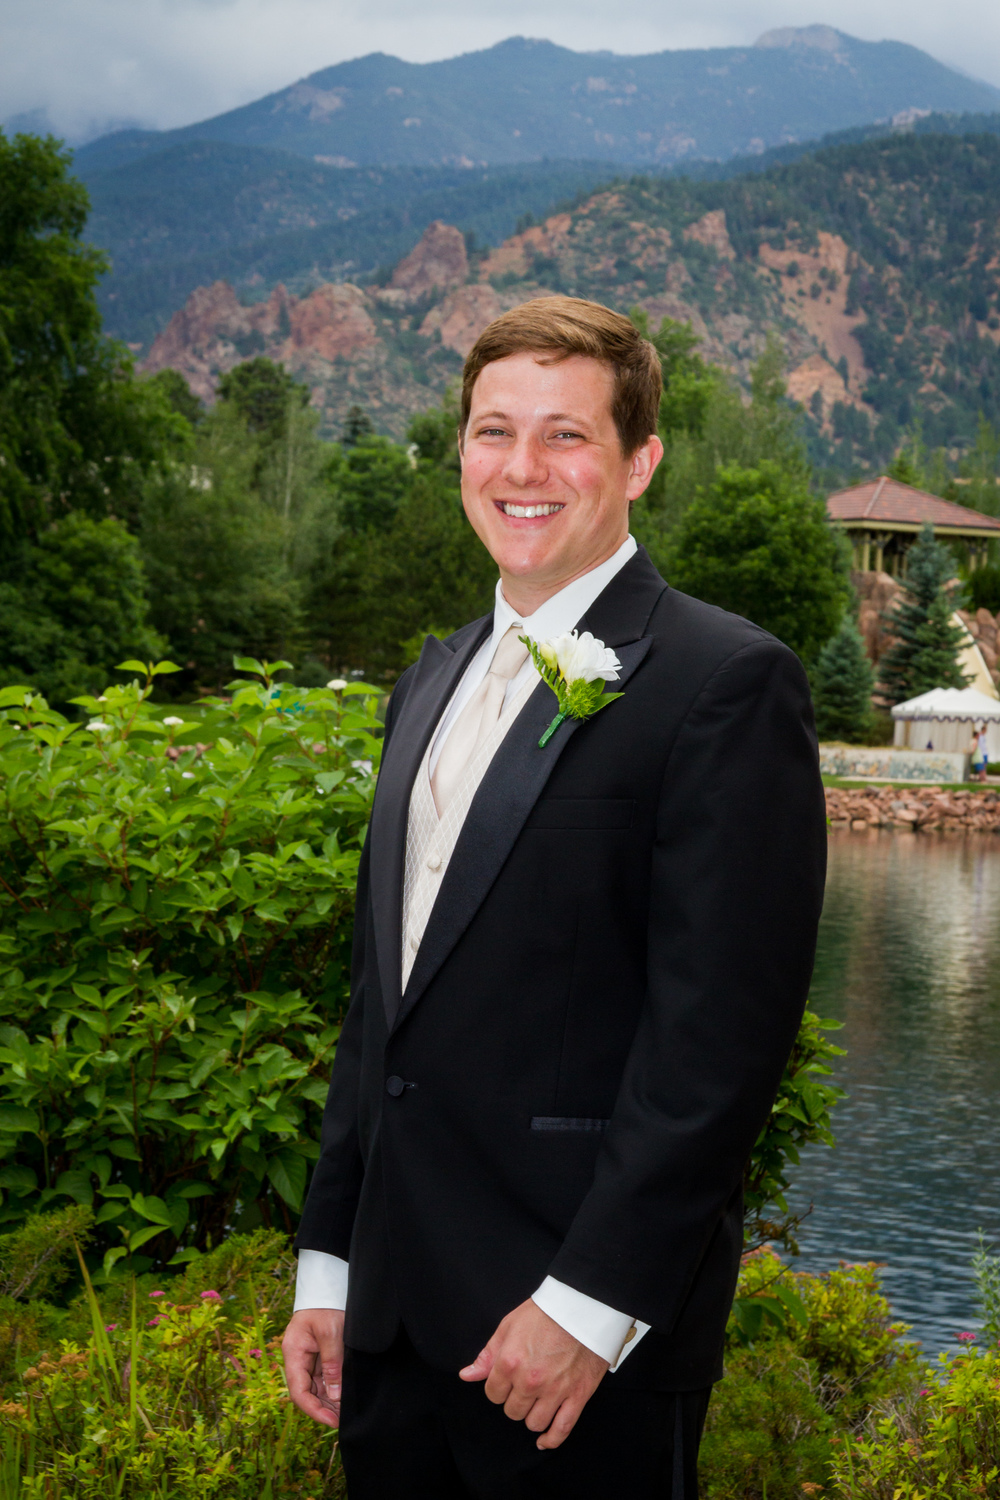 Broadmoor-Wedding_021.JPG